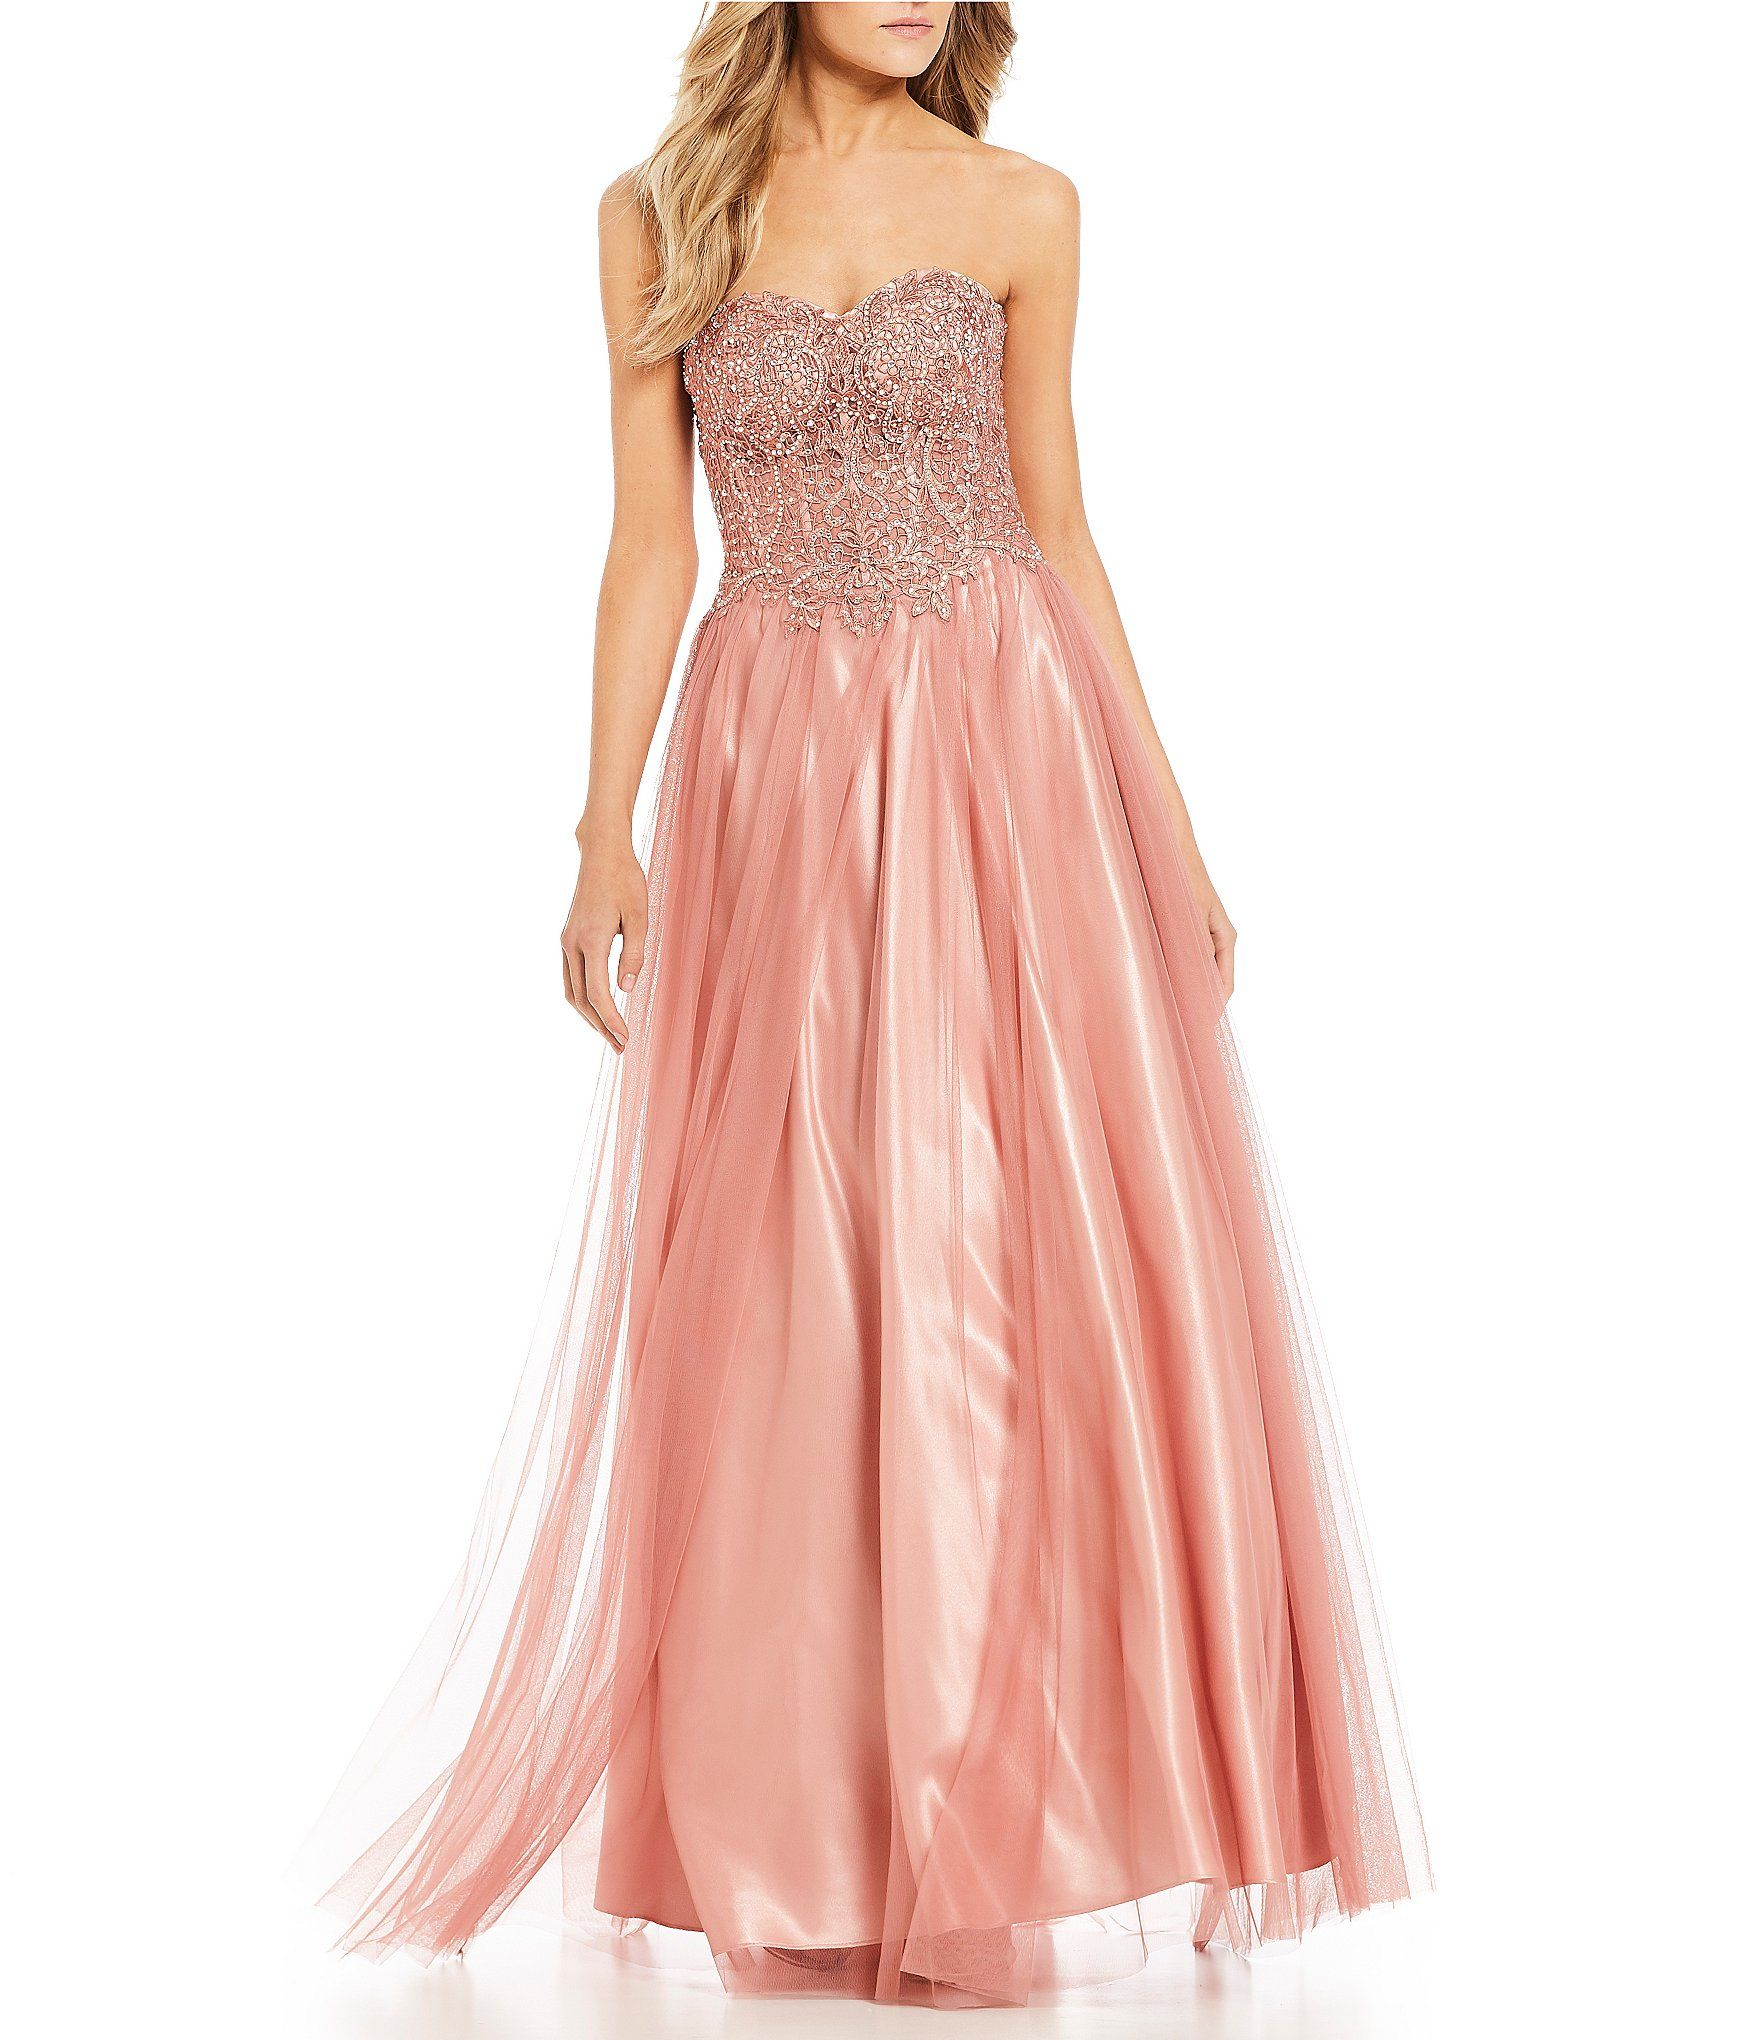 2c4c226db70 Blondie Nites Strapless Beaded Bodice Ball Gown #Dillards | La vie ...